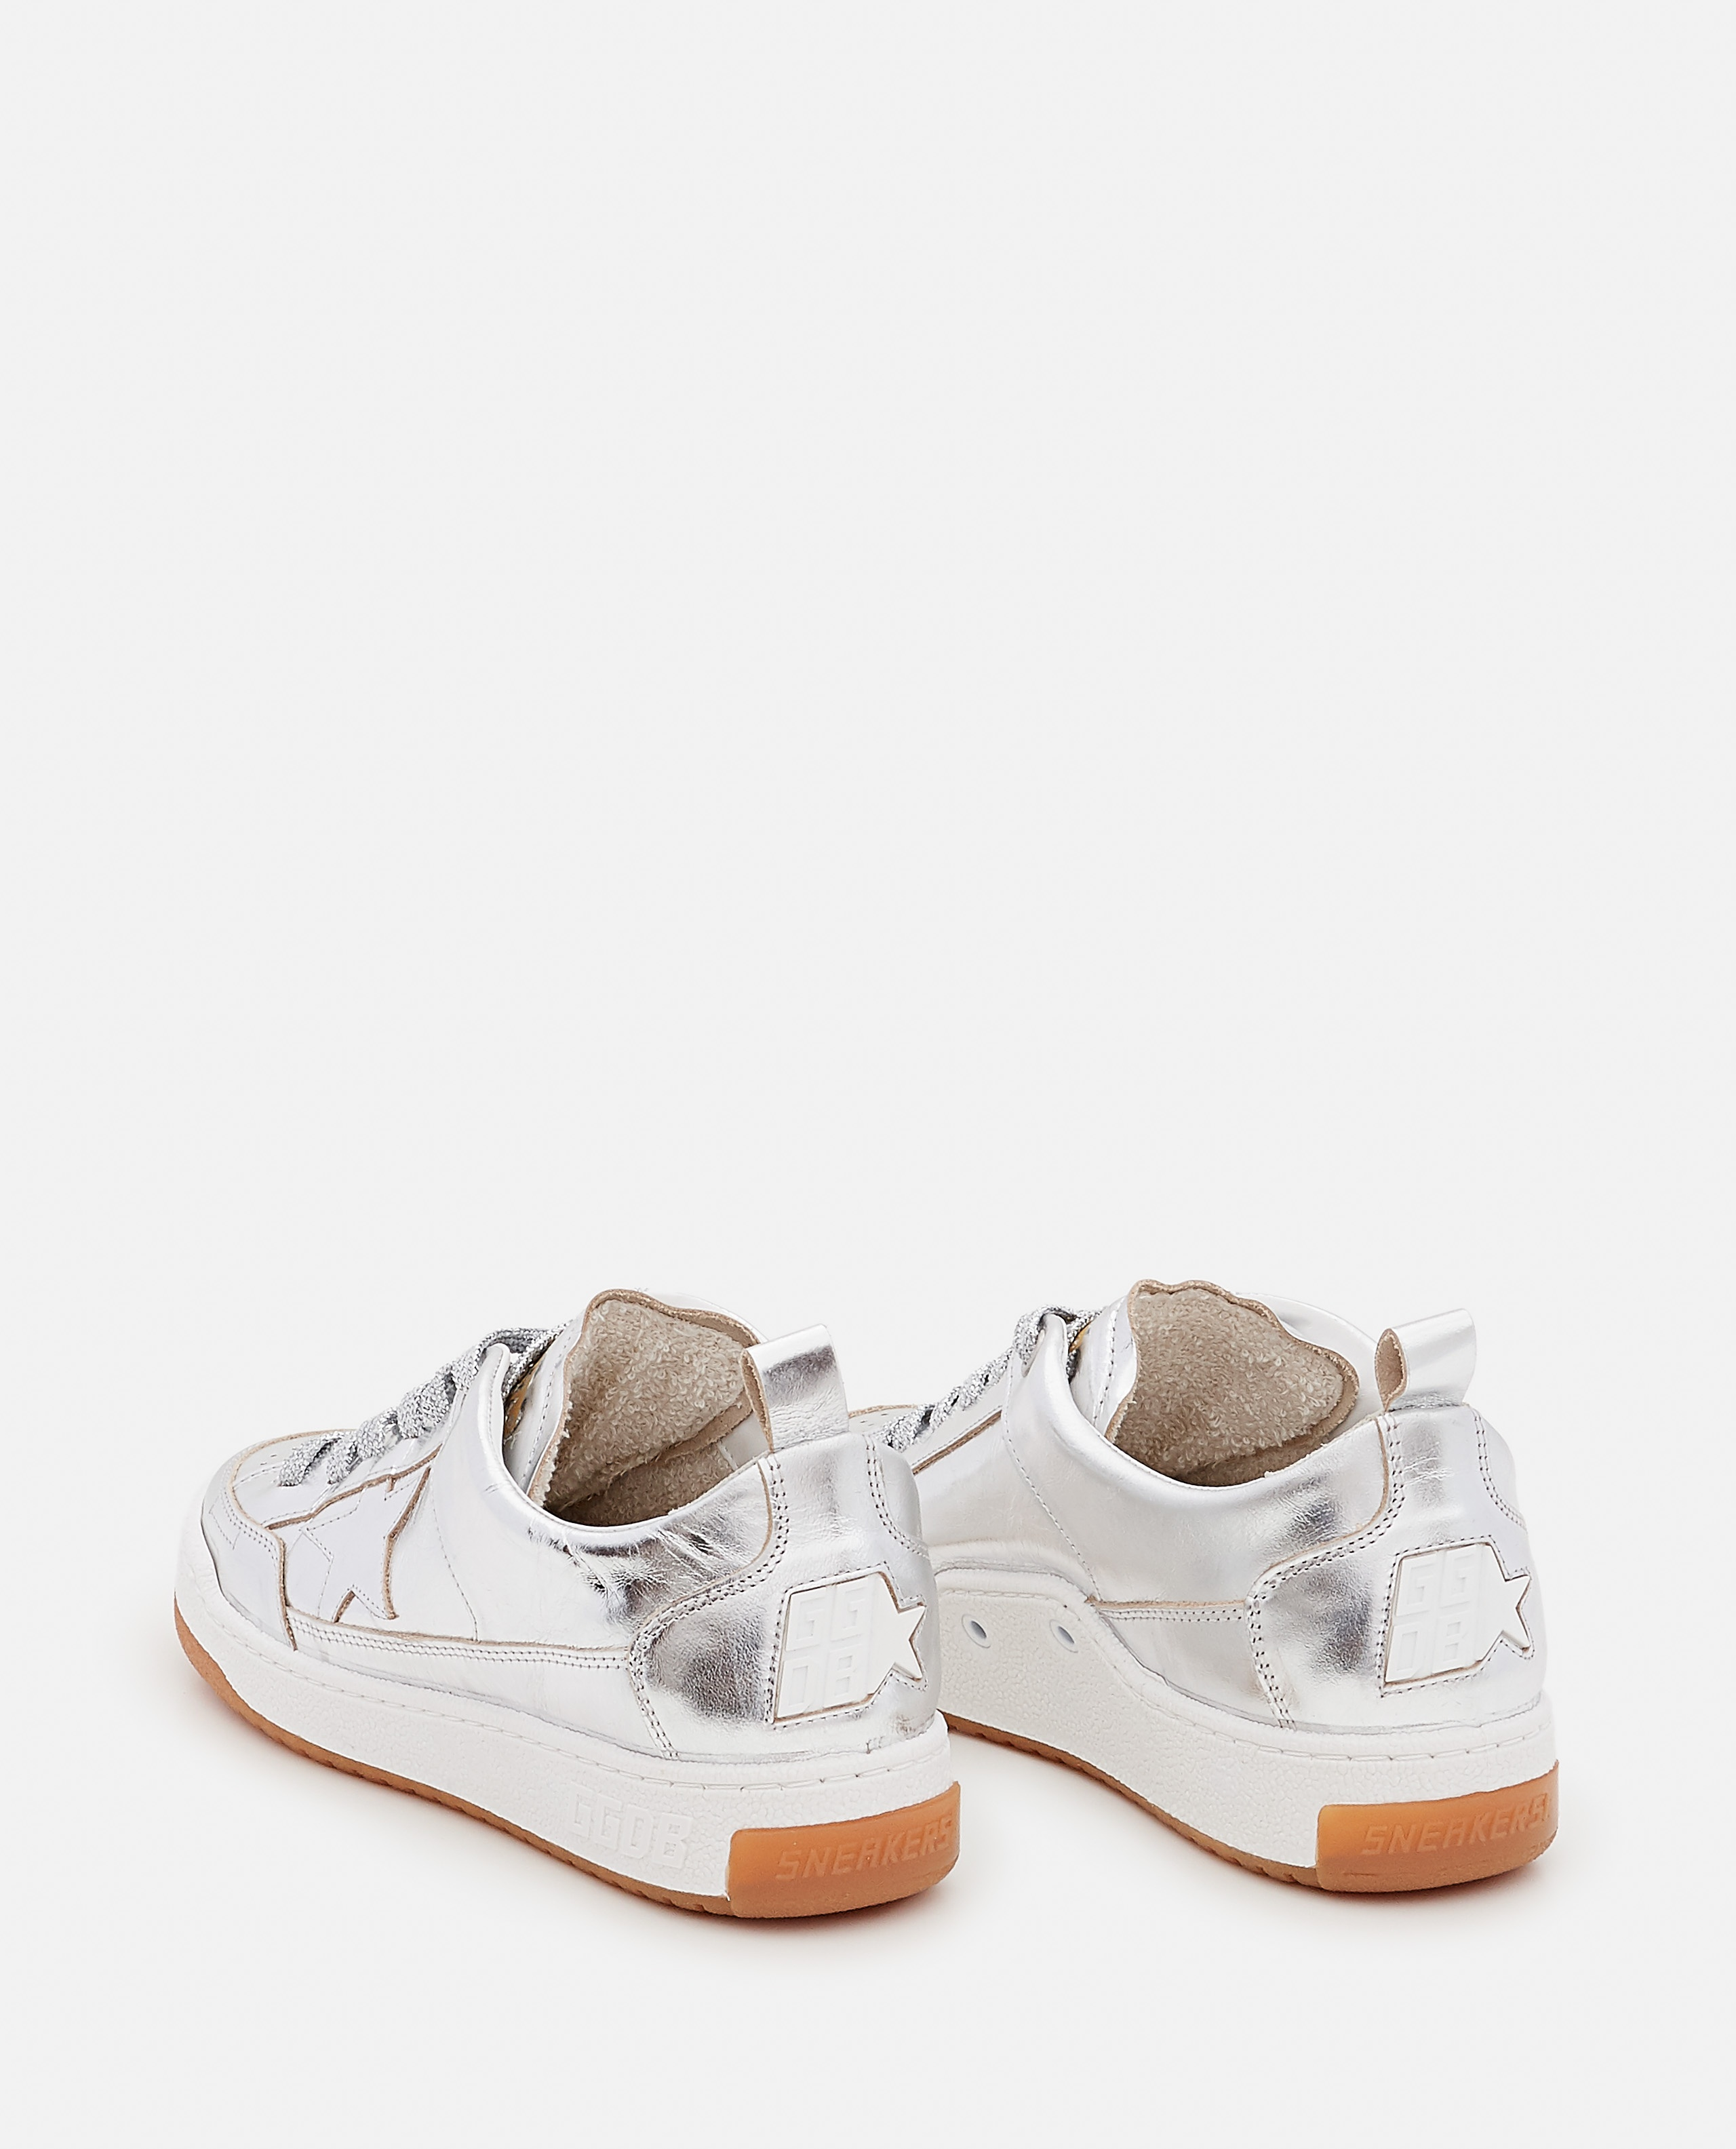 YEAH LAMINATED LEATHER SNEAKERS Women Golden Goose 000322260047121 3